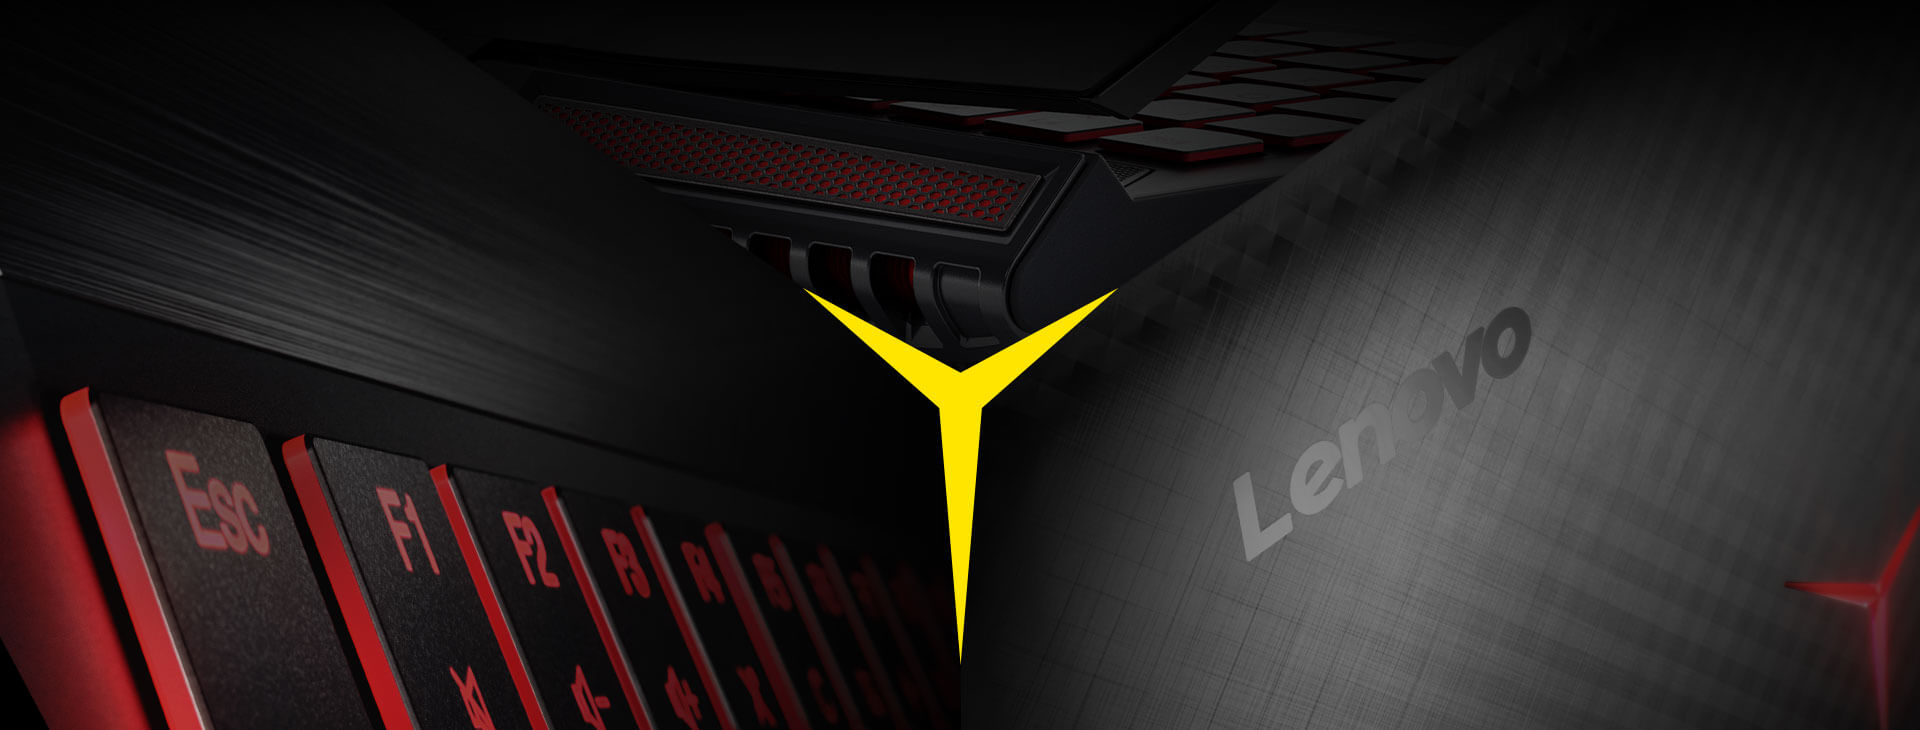 lenovo gaming laptops legion gaming lenovo portugal lenovo gaming laptops legion gaming